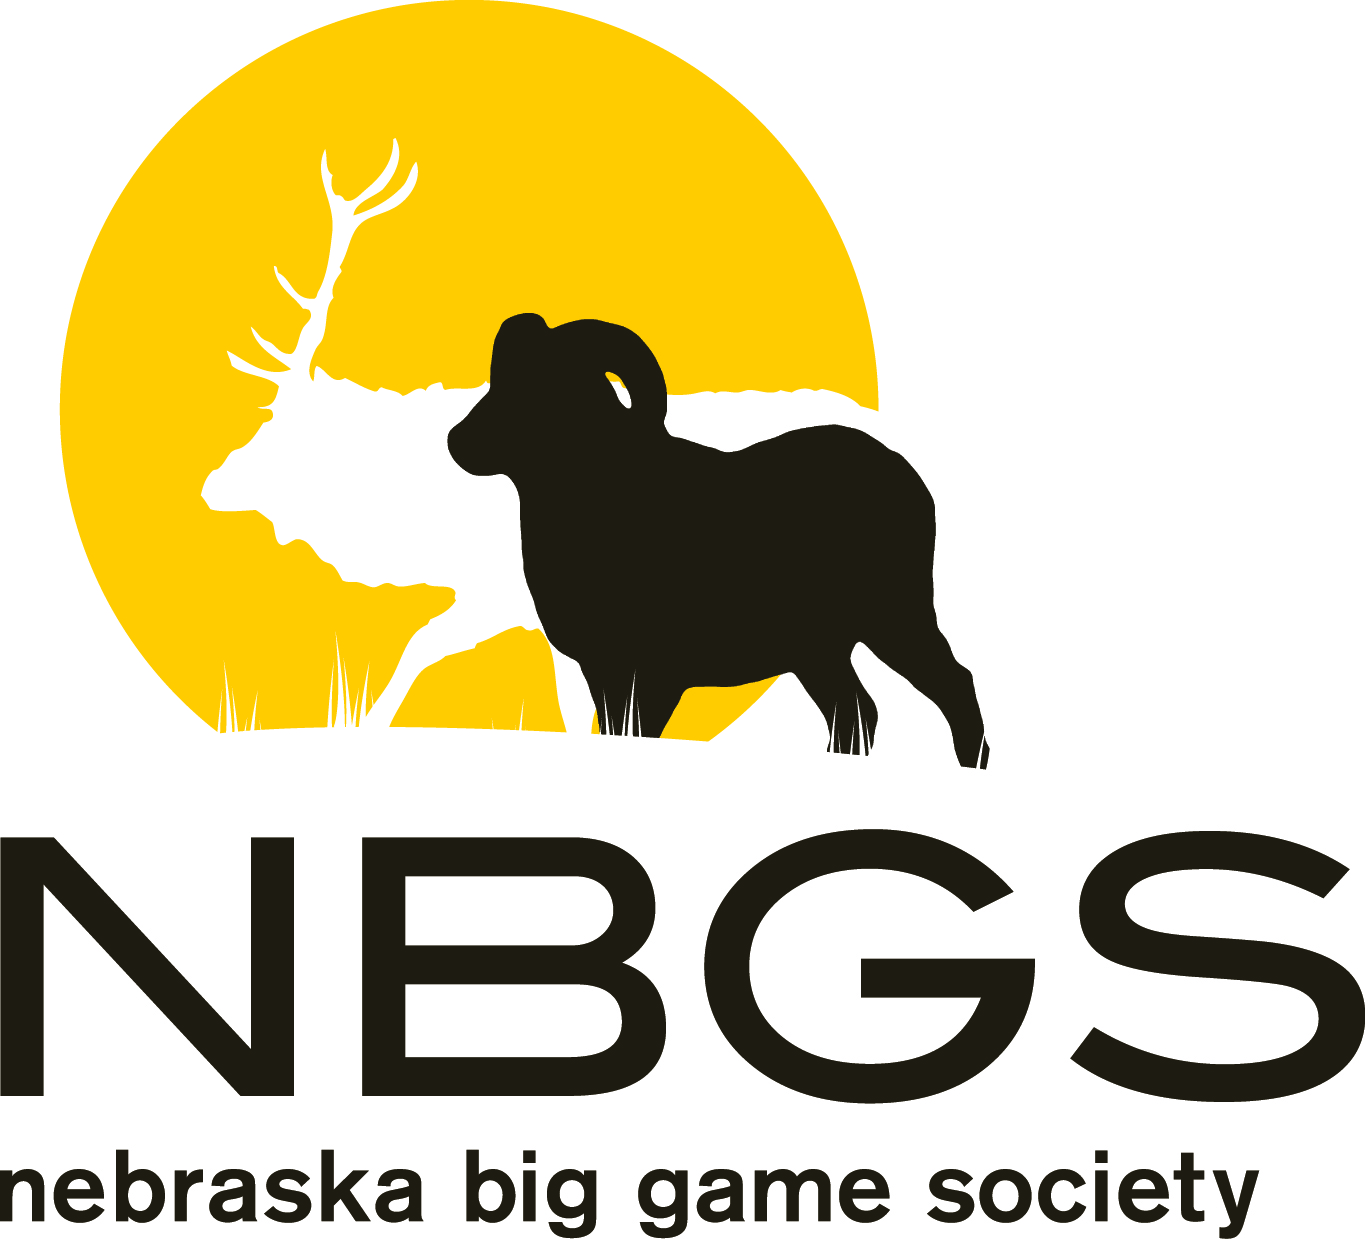 Nebraska Big Game Society